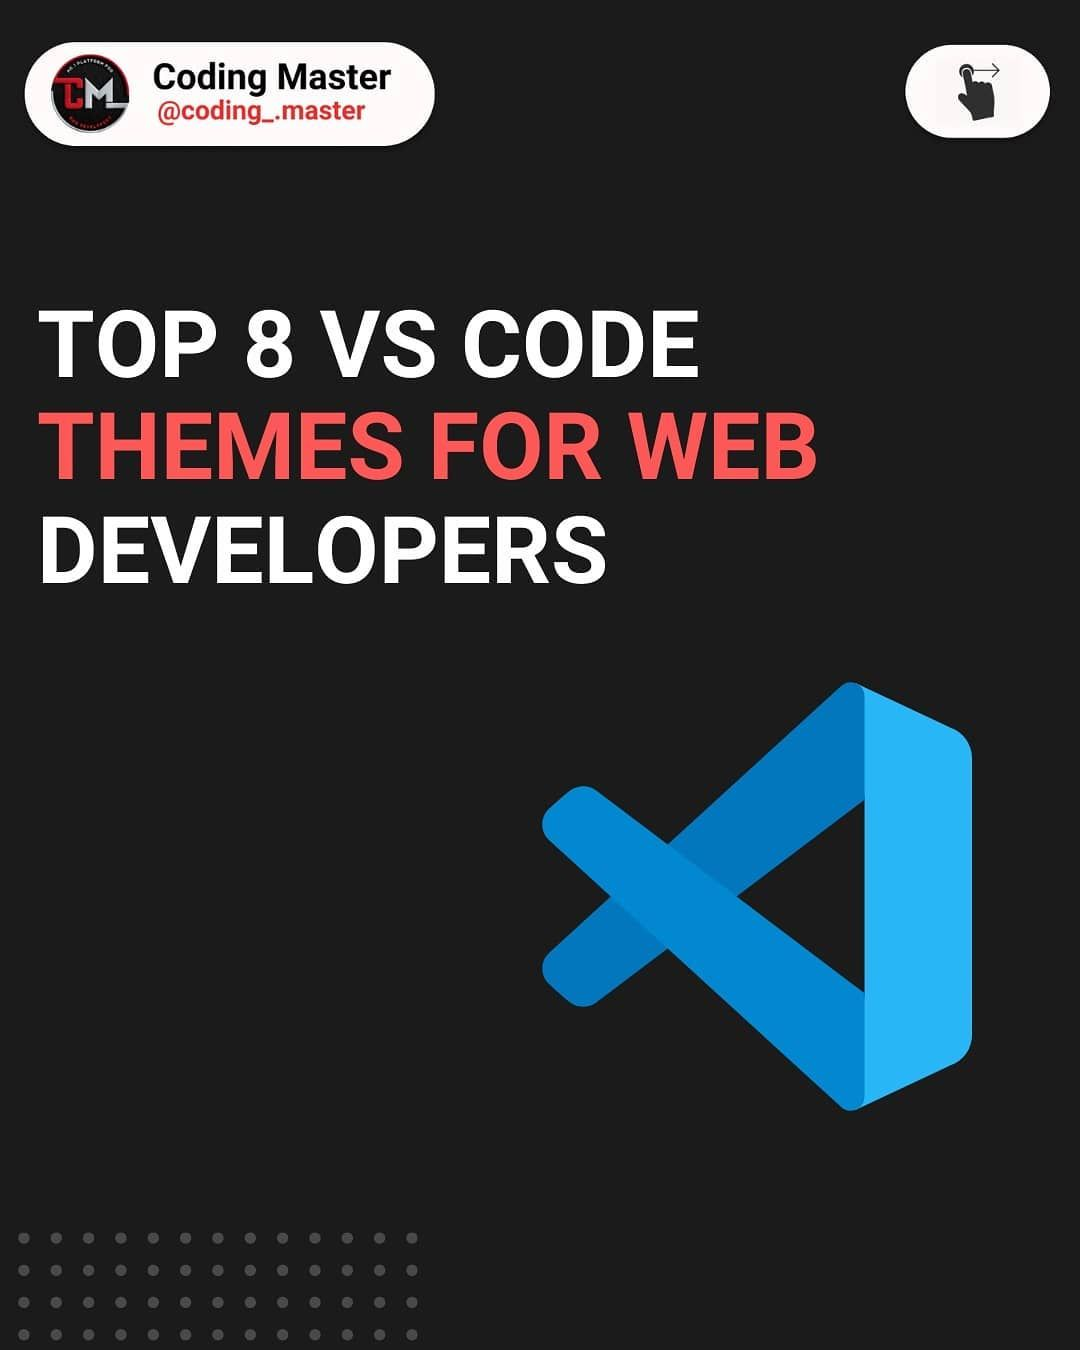 Top 8 vscode themes for web developers